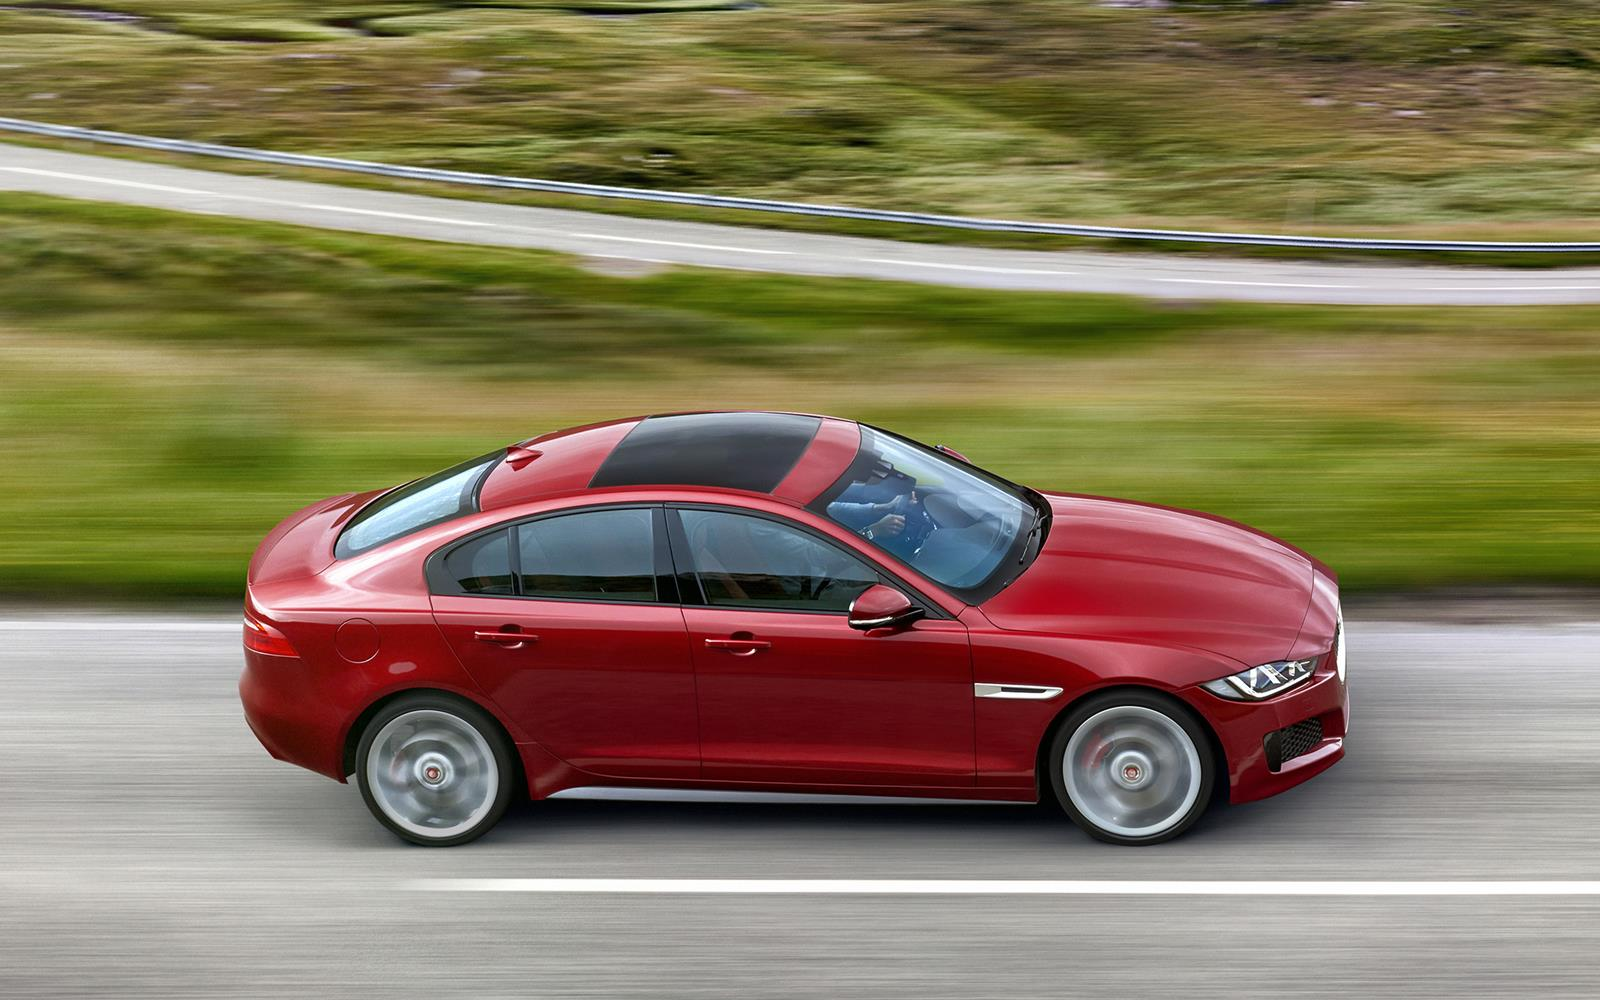 Coming Soon 2015 Jaguar XE